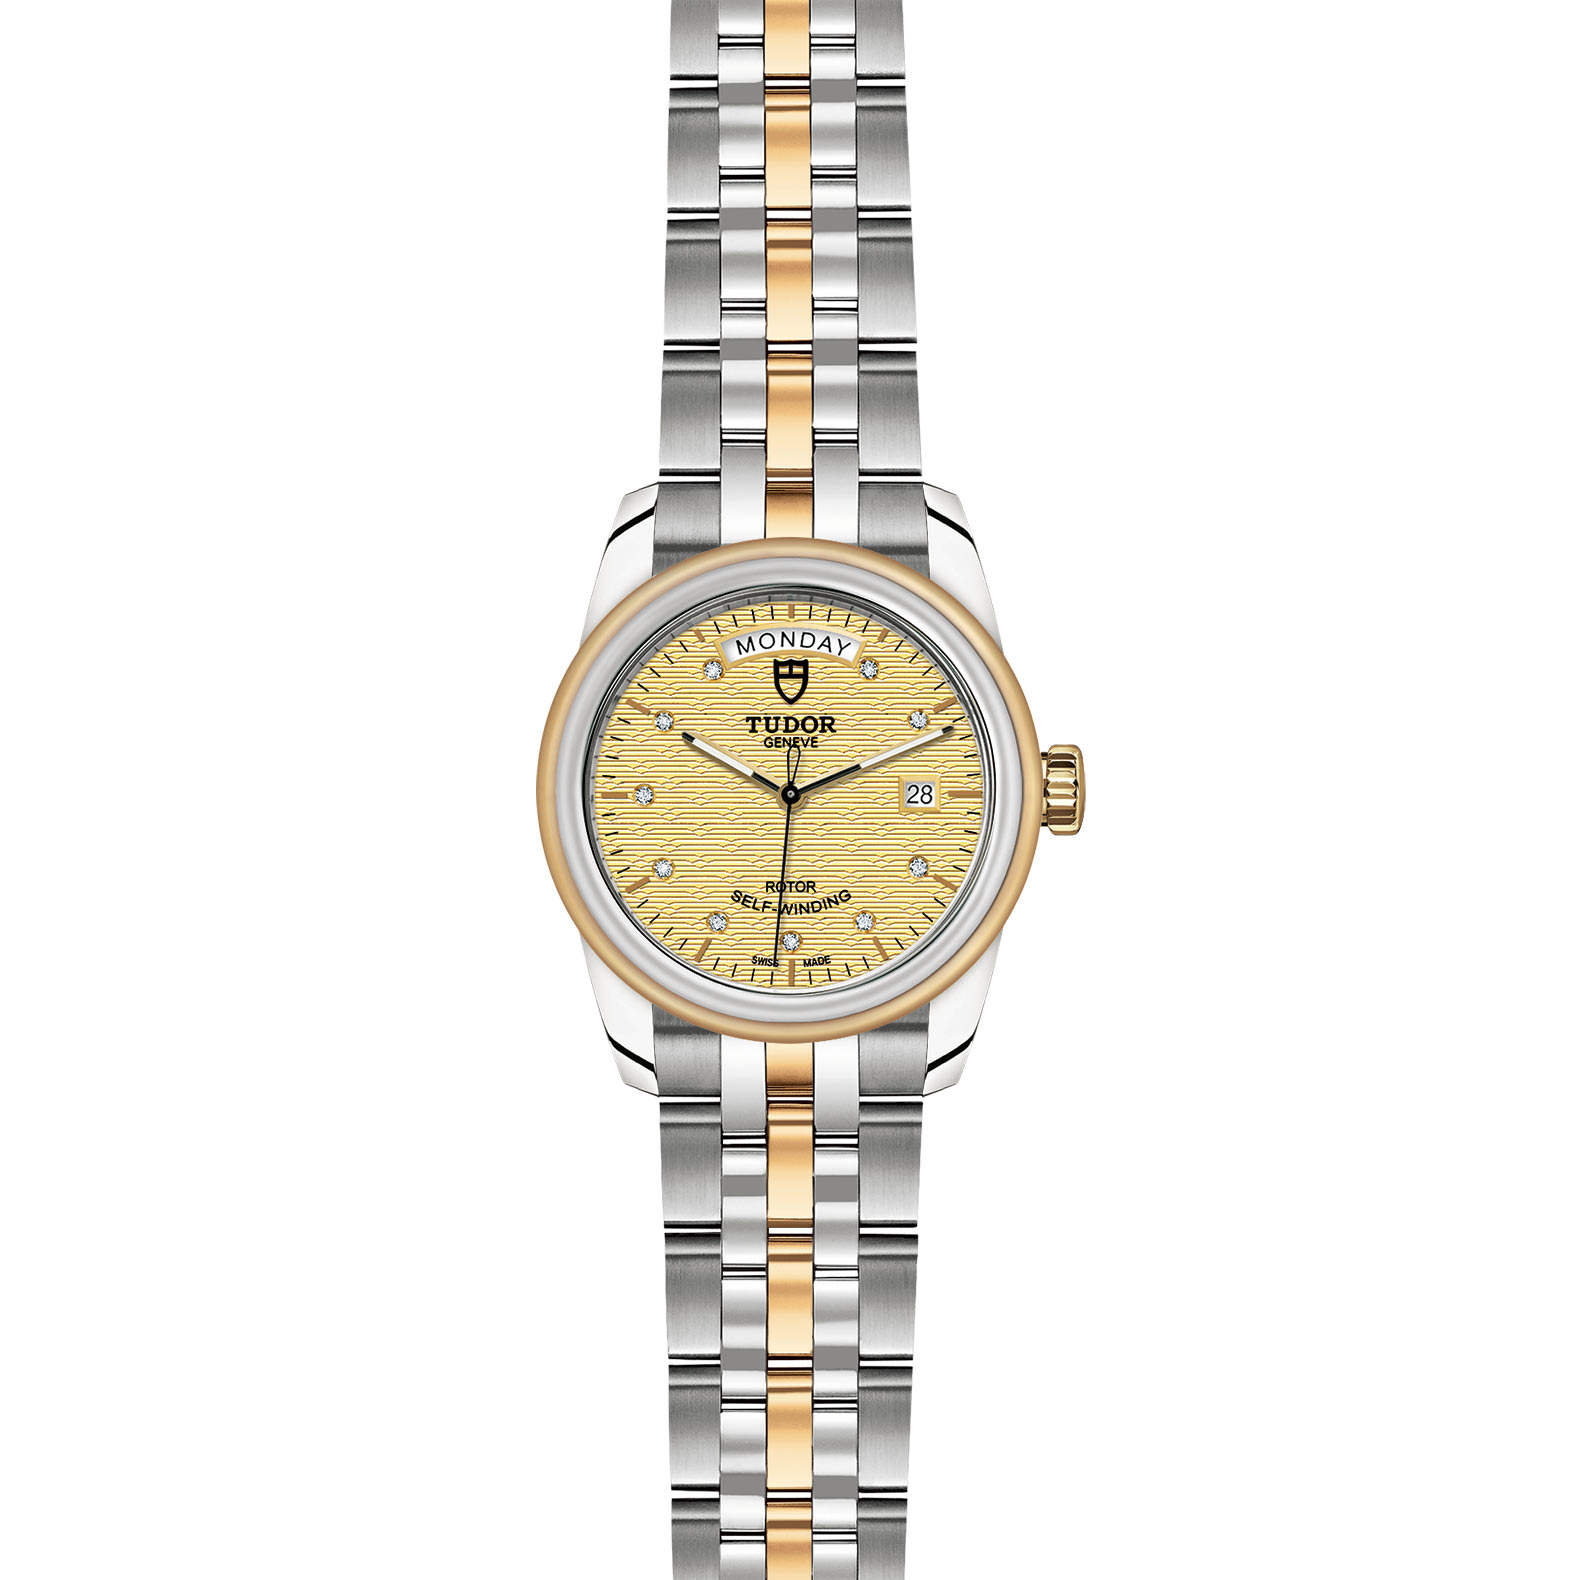 TUDOR Glamour Date Day M56003 0004 Frontfacing